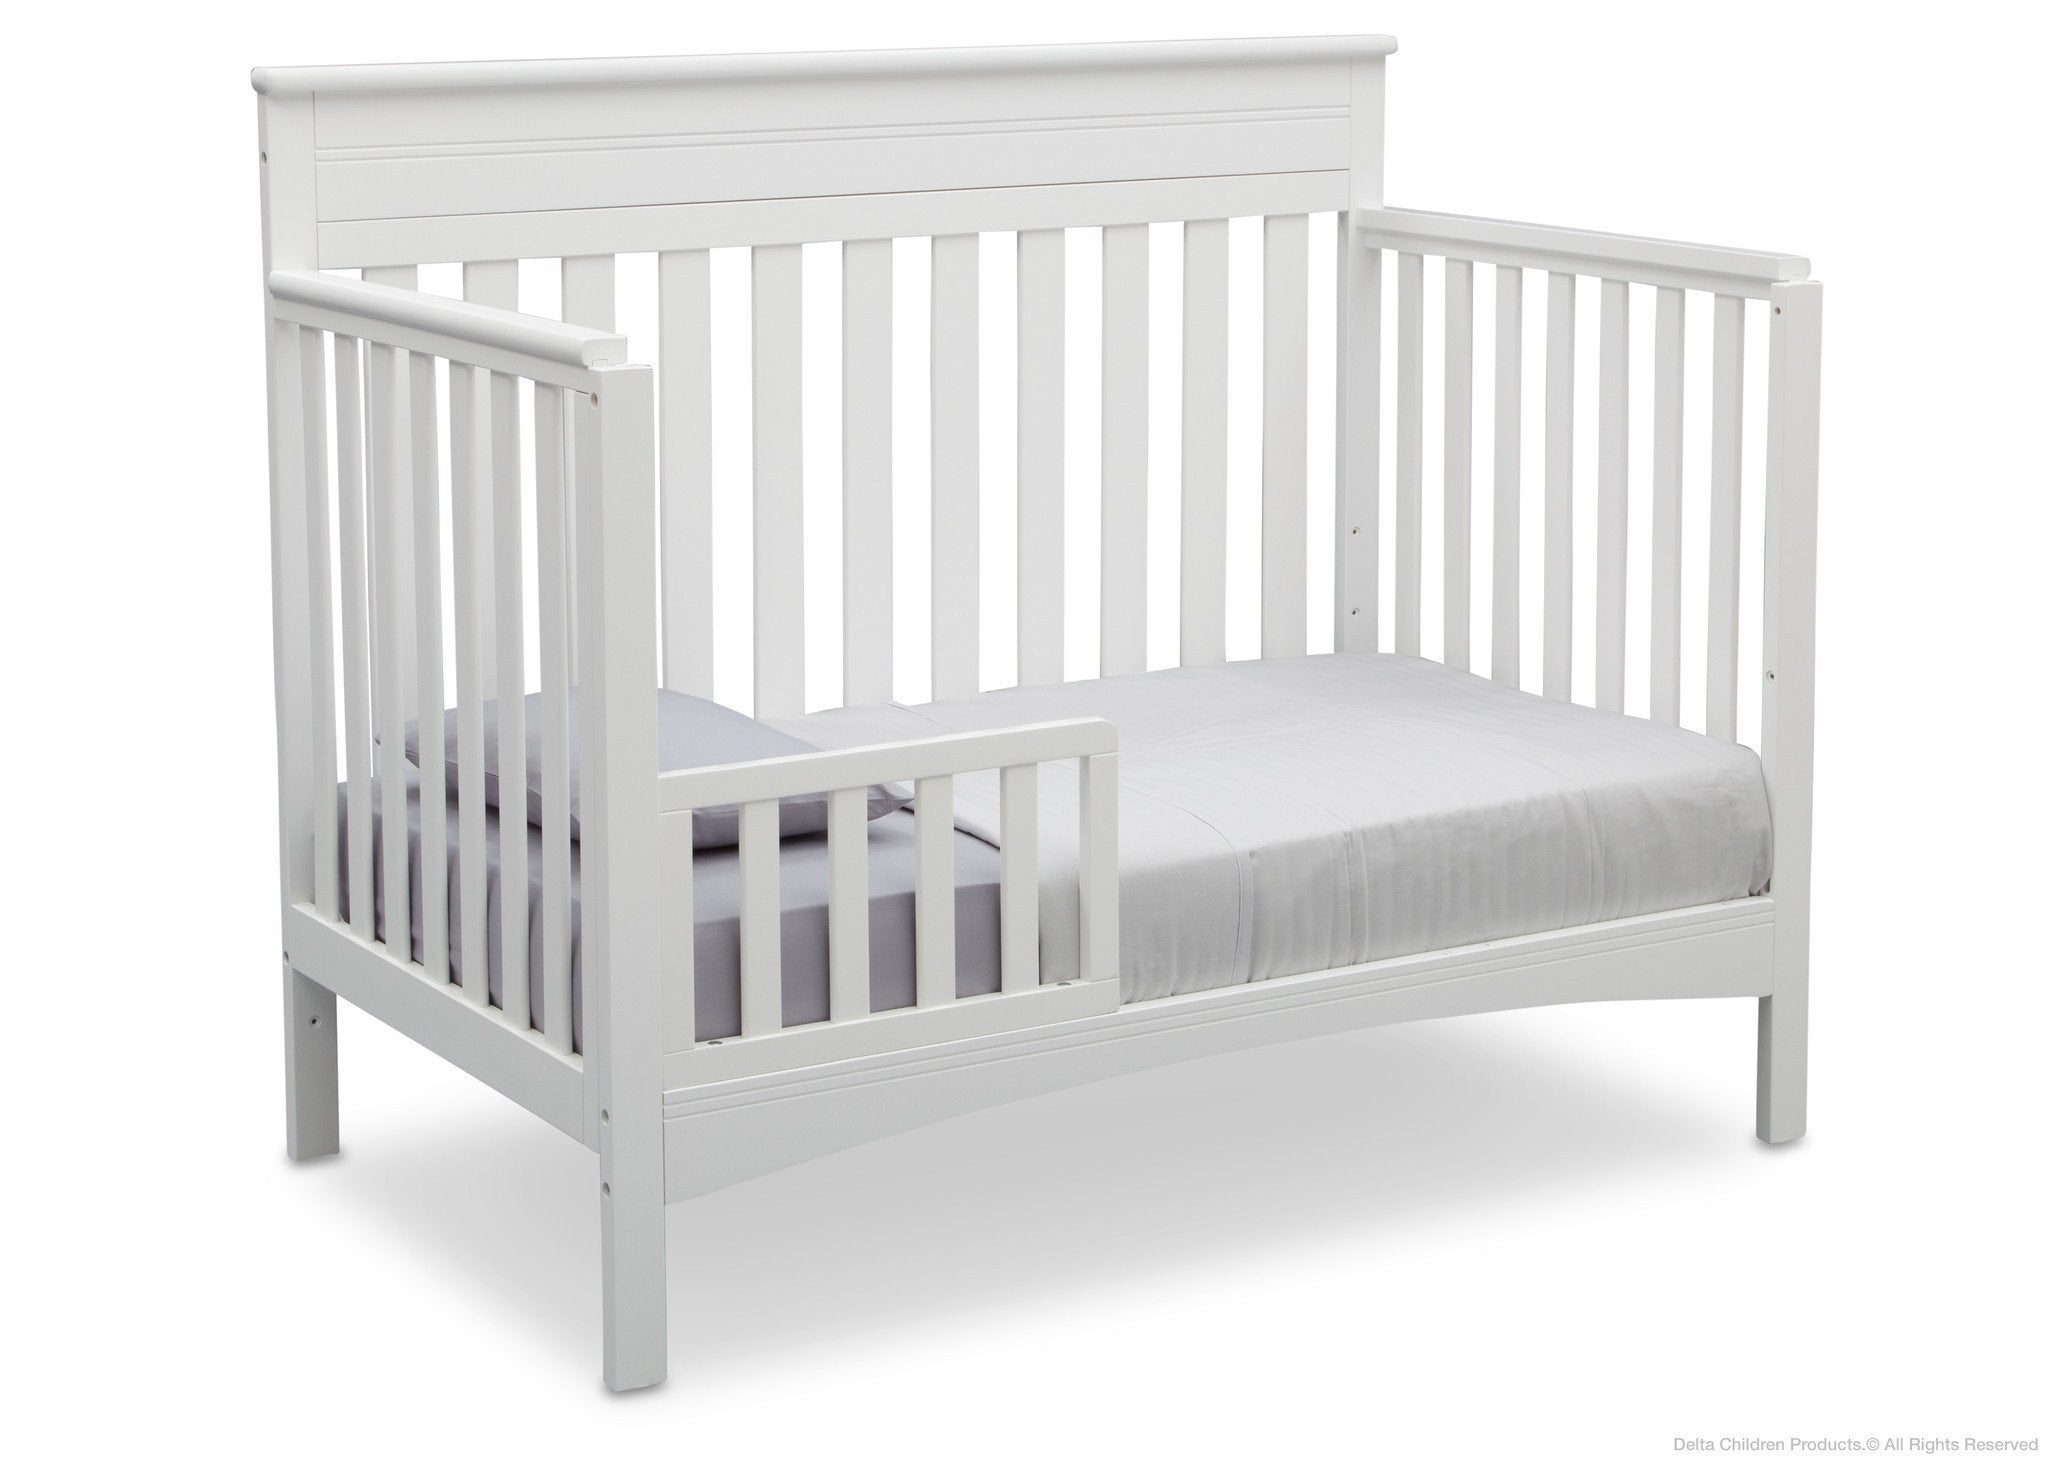 Delta Children Bianca (130) Fabio 4-in-1 Crib Side View, Toddler Bed Conversion with Toddler Guardrail b4b